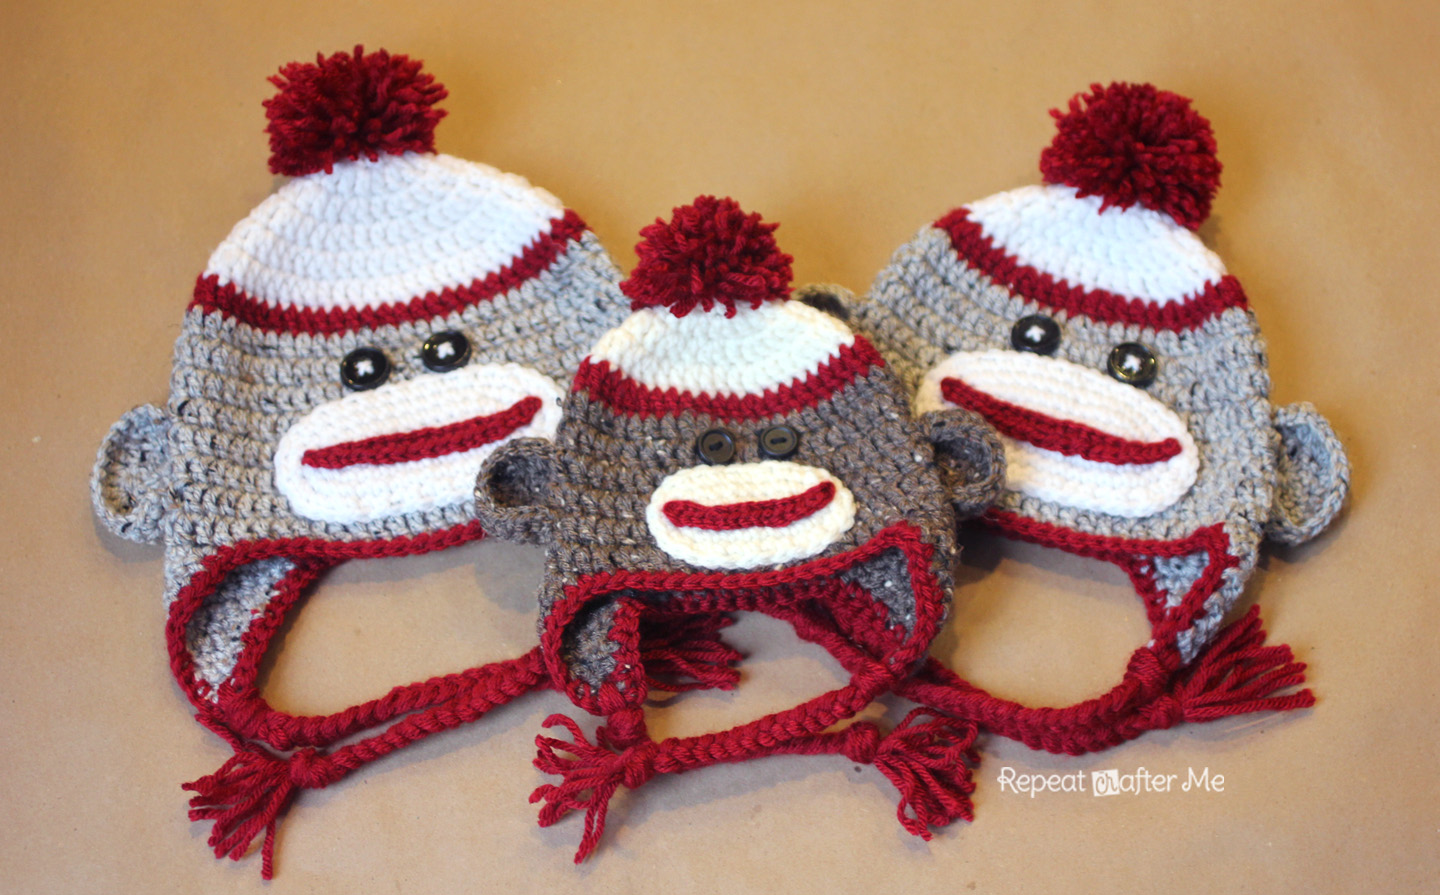 ffa9cf36eae Crochet Sock Monkey Hat Pattern - Repeat Crafter Me